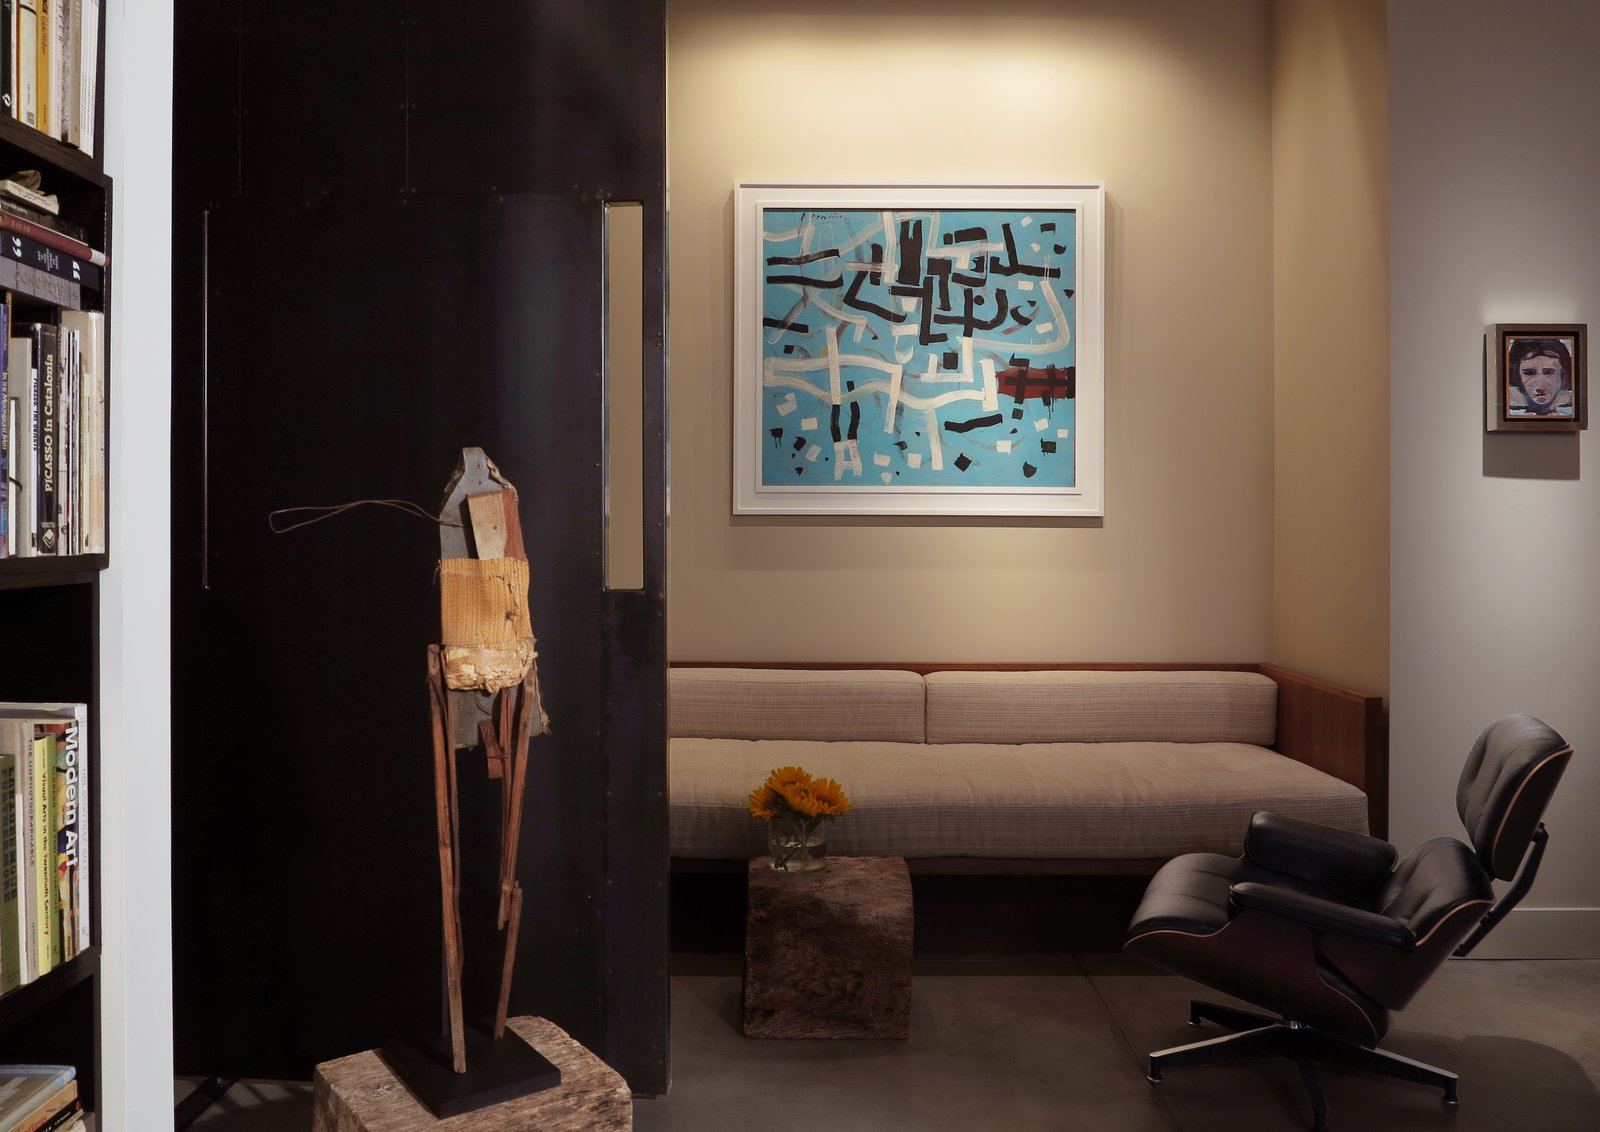 """My House: Gallery Owner Francis Mill's San Francisco Loft Is a Poetic """"Place For Looking"""""""